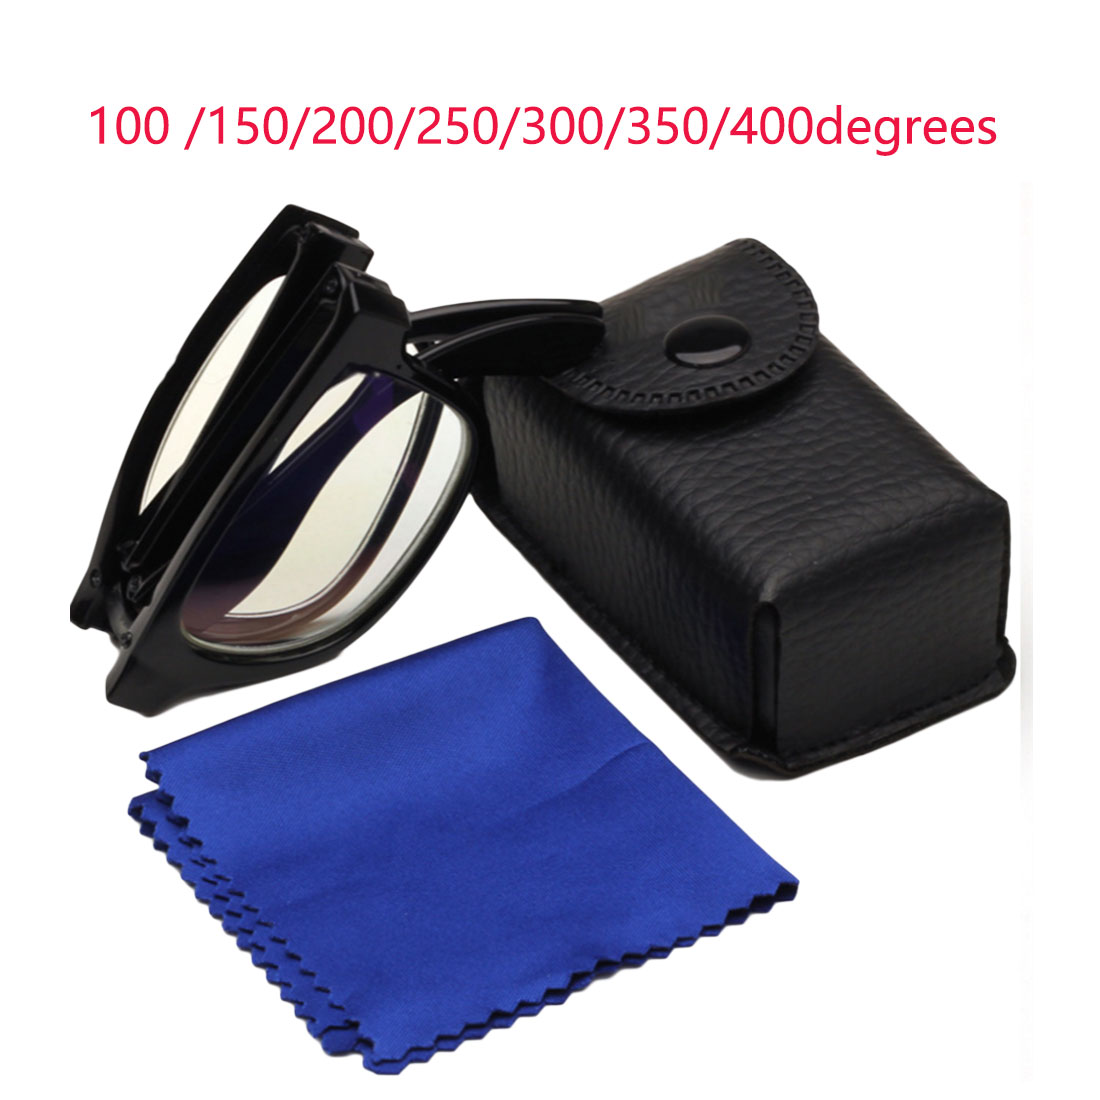 100/150/200/250/300/350/400 Degree Glasses Magnifiers Portable Collapsible Reading Glasses Ultralight Presbyopic Glasses ultra thin portable folding presbyopic glasses